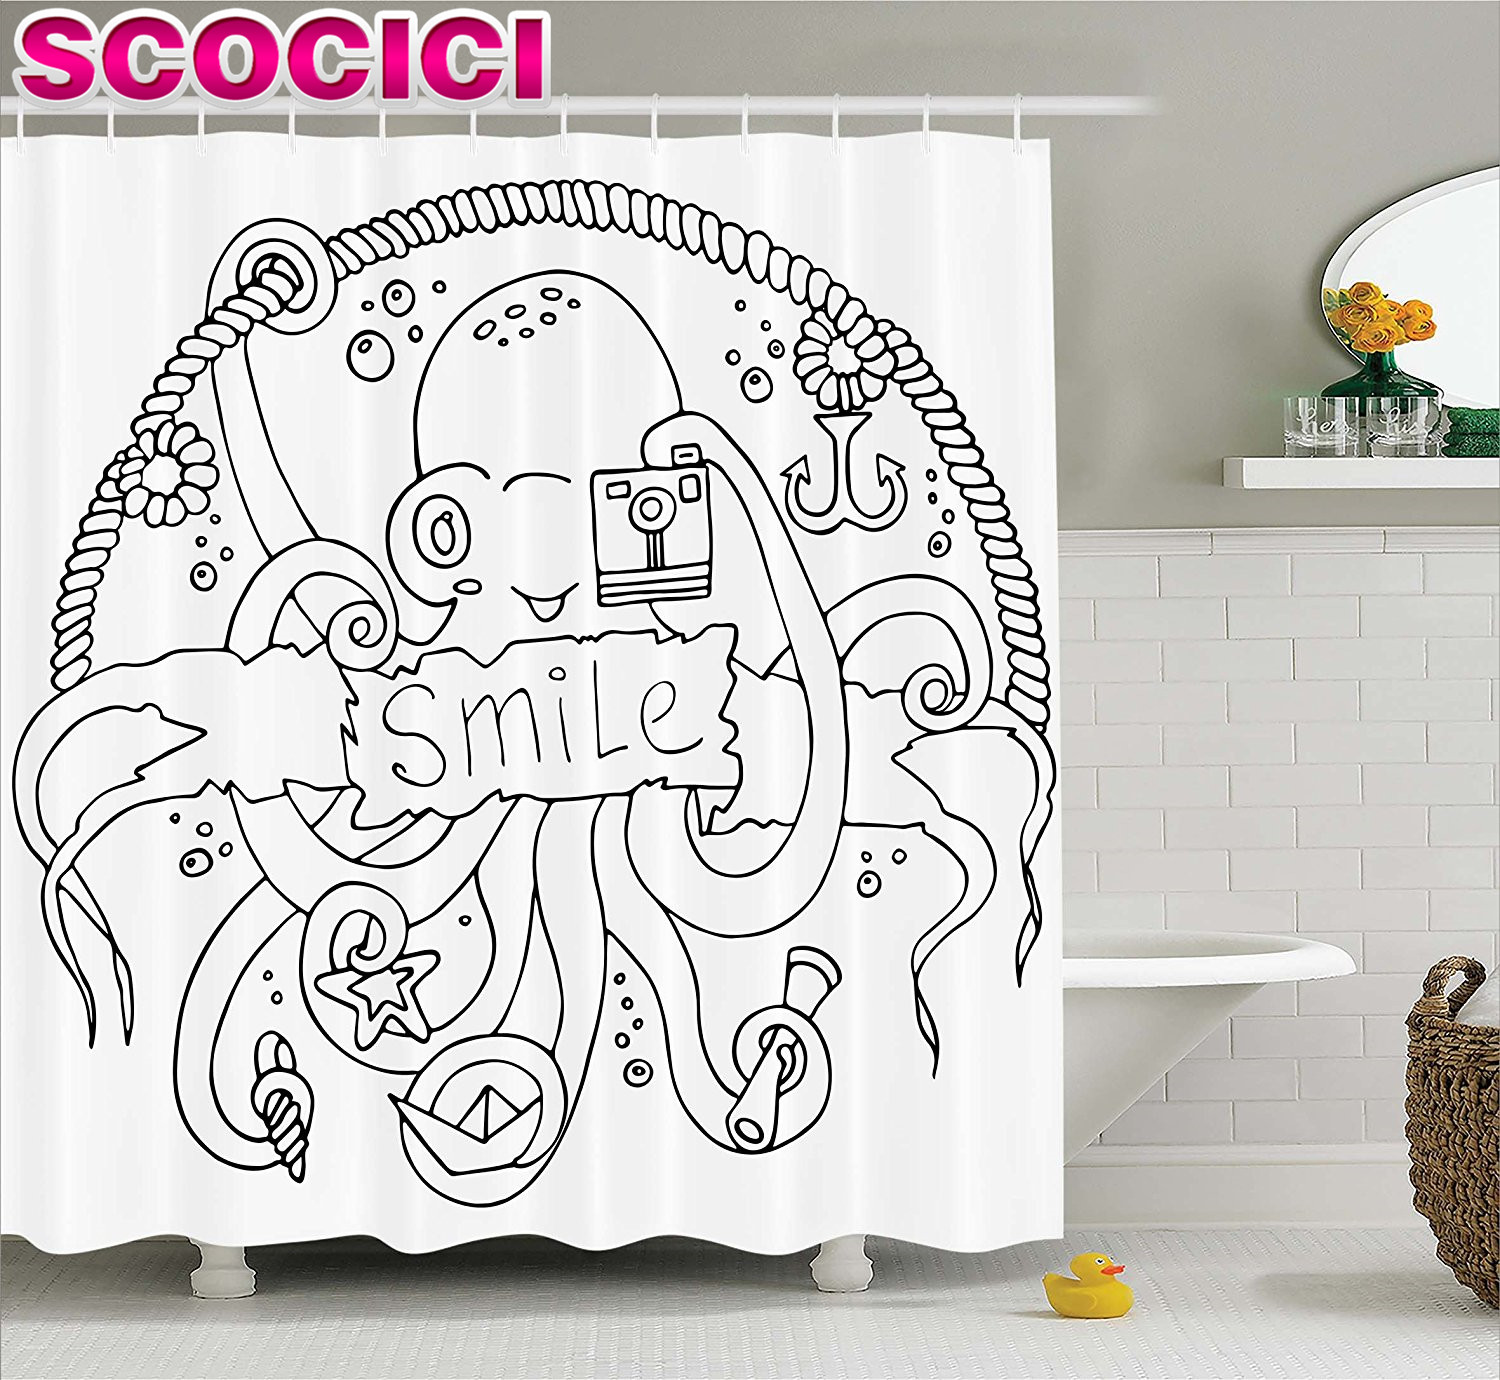 Kraken shower curtain - Kraken Decor Shower Curtain Sketchy Inspirational Octopus Taking A Photo With Camera Underwater Sea Artwork Fabric Bathroom Deco